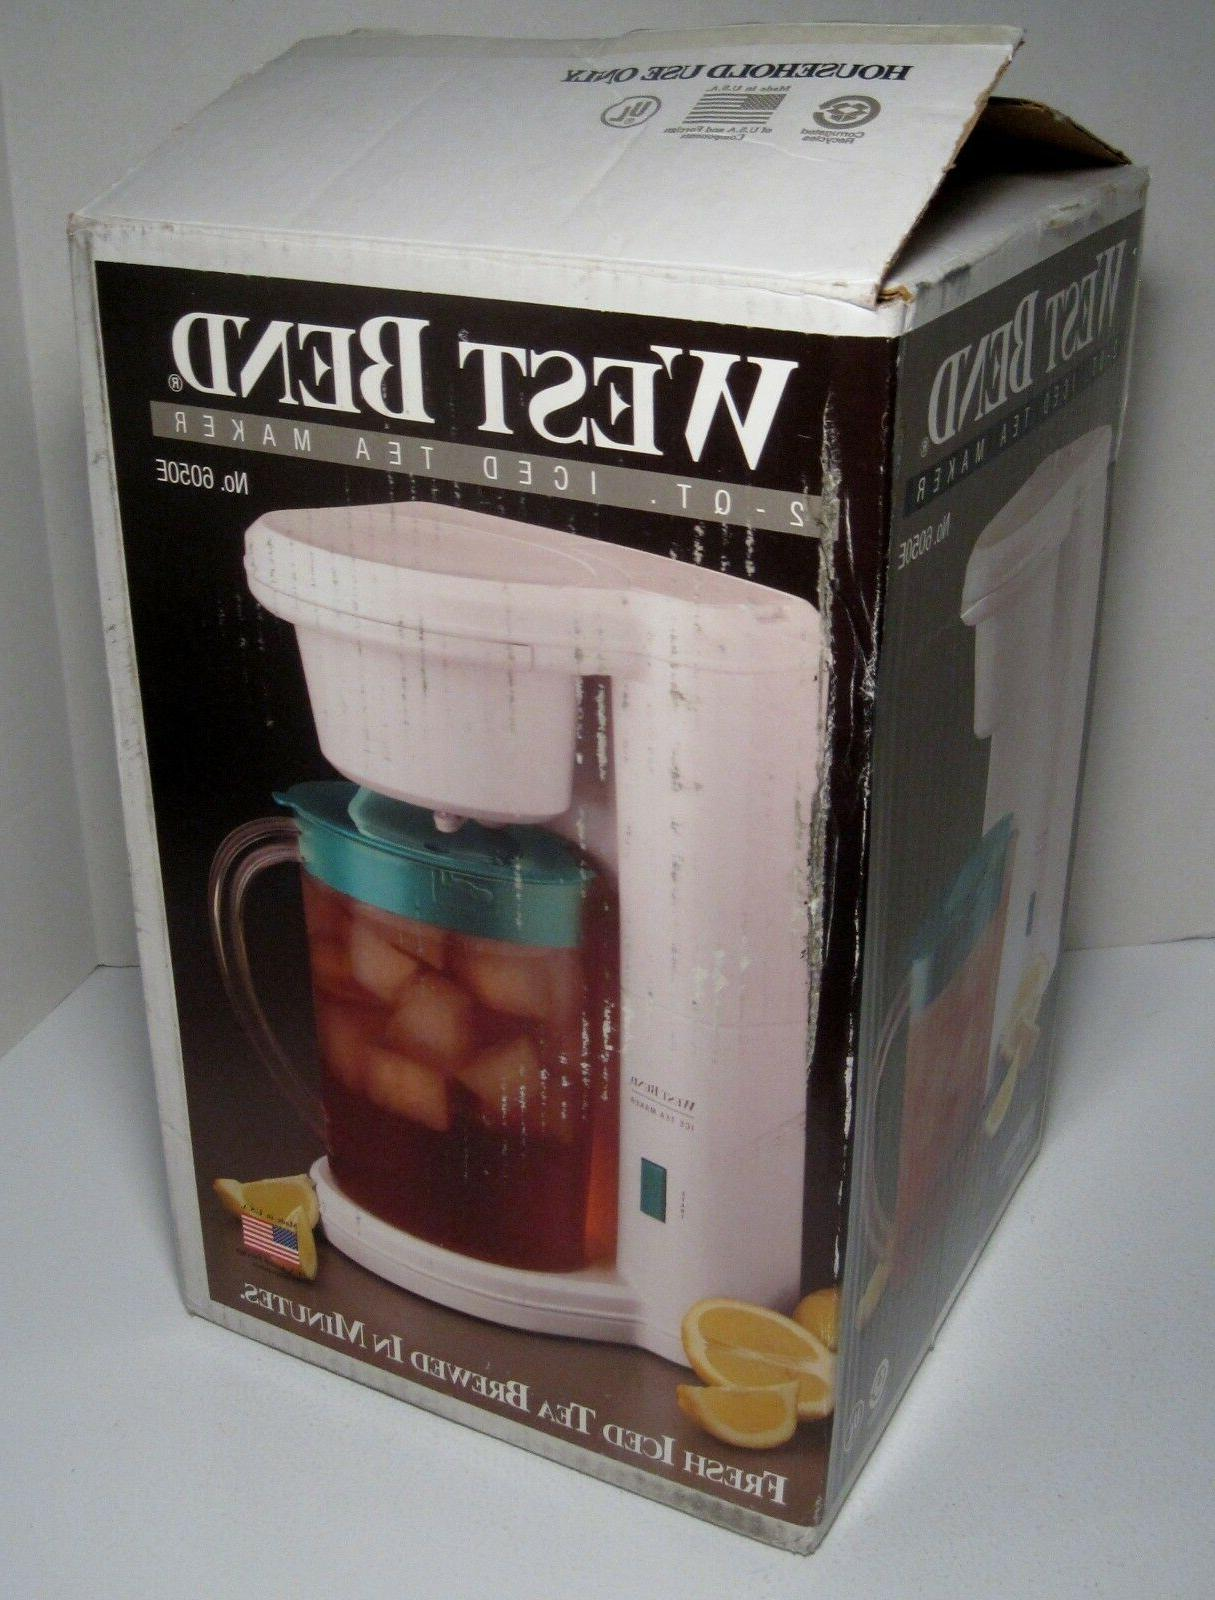 NOS WEST BEND 2 Qt Iced Tea Maker Model 6050E-NEW IN BOX-MAD